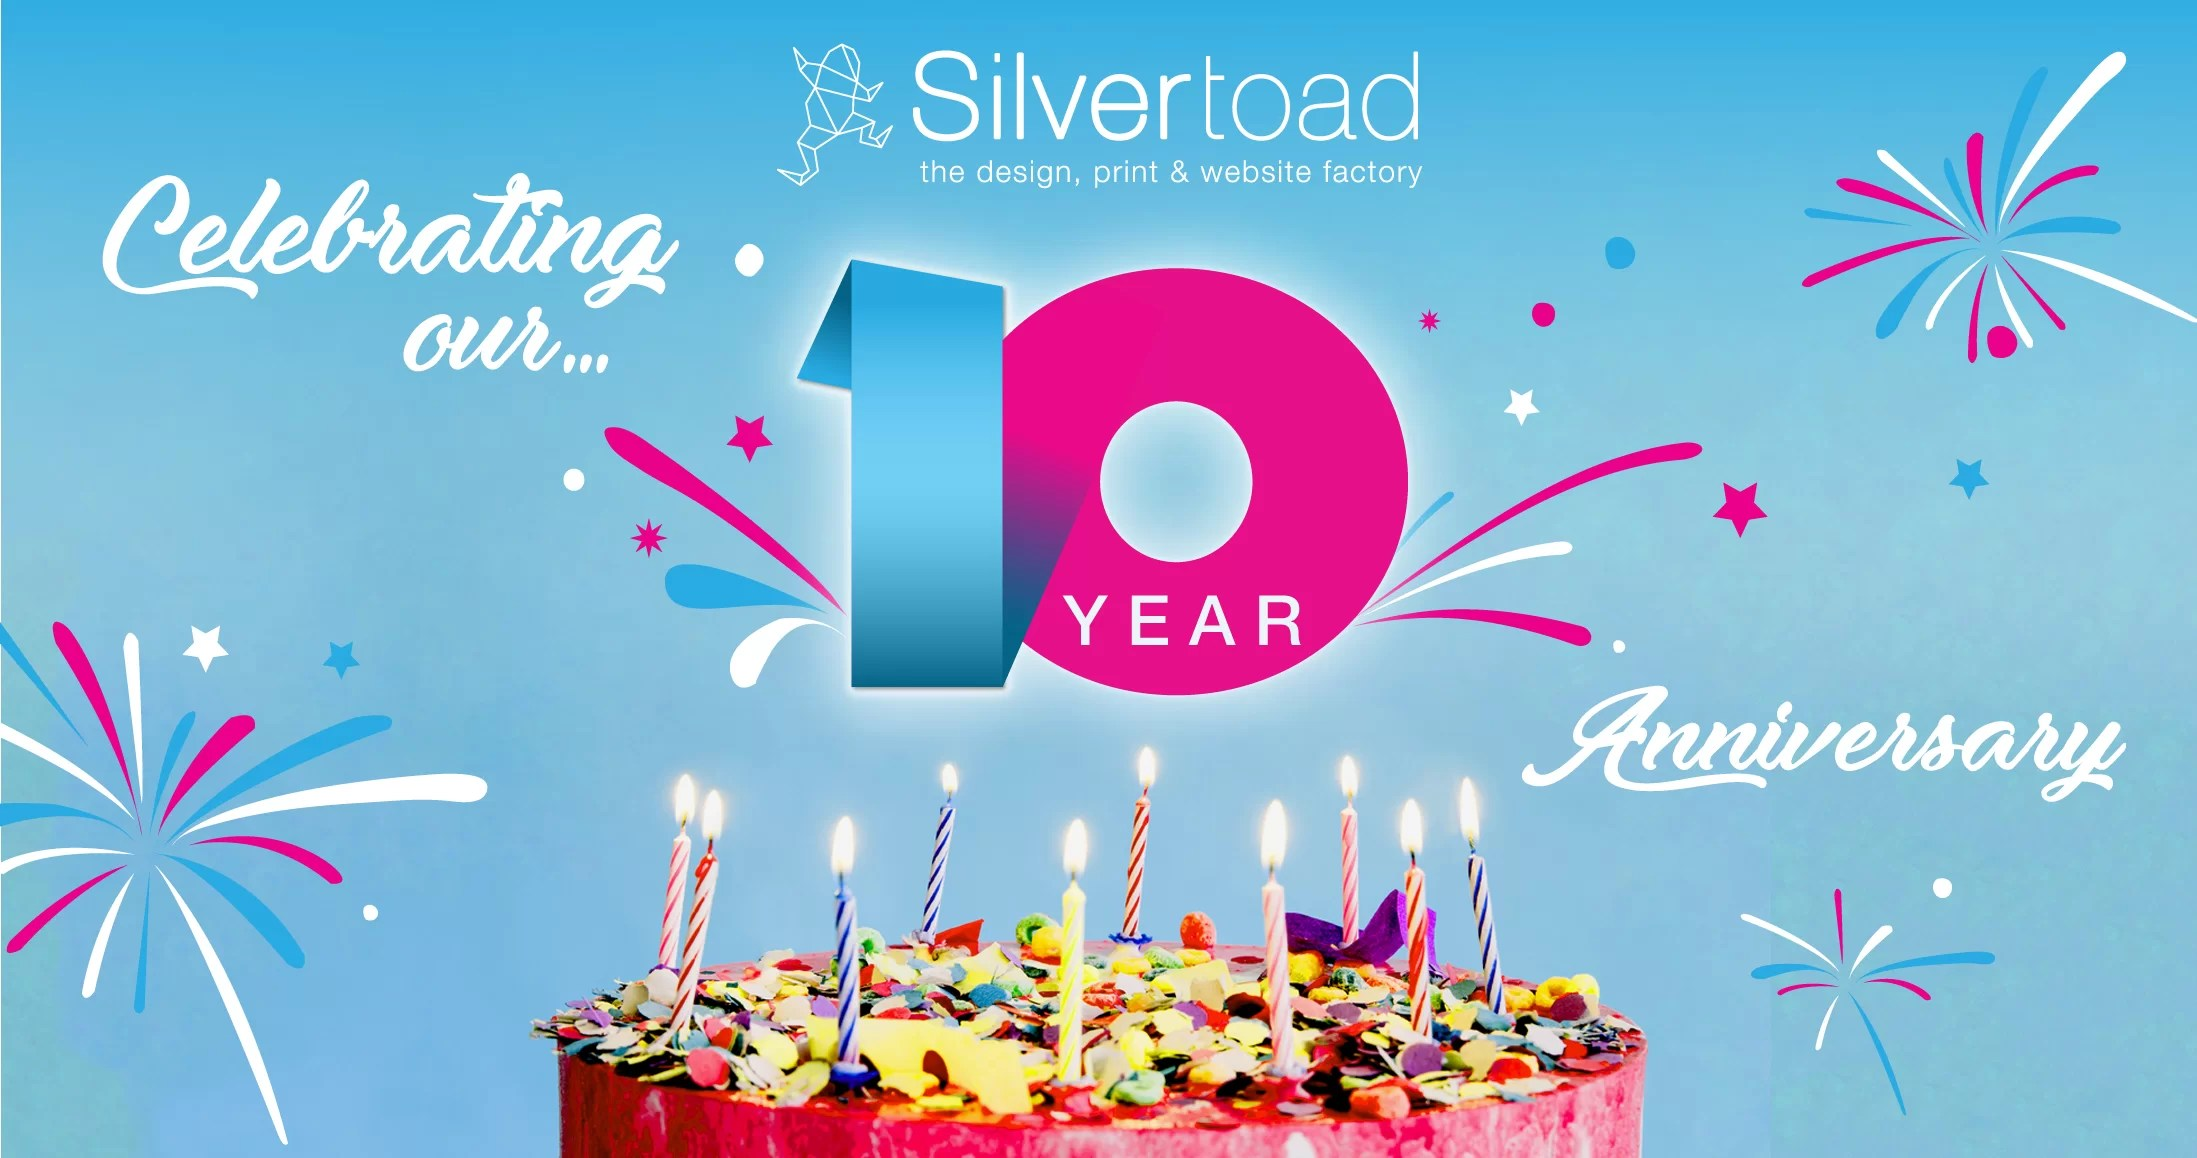 Silvertoad's 10th Year Anniversary + Giveaway!